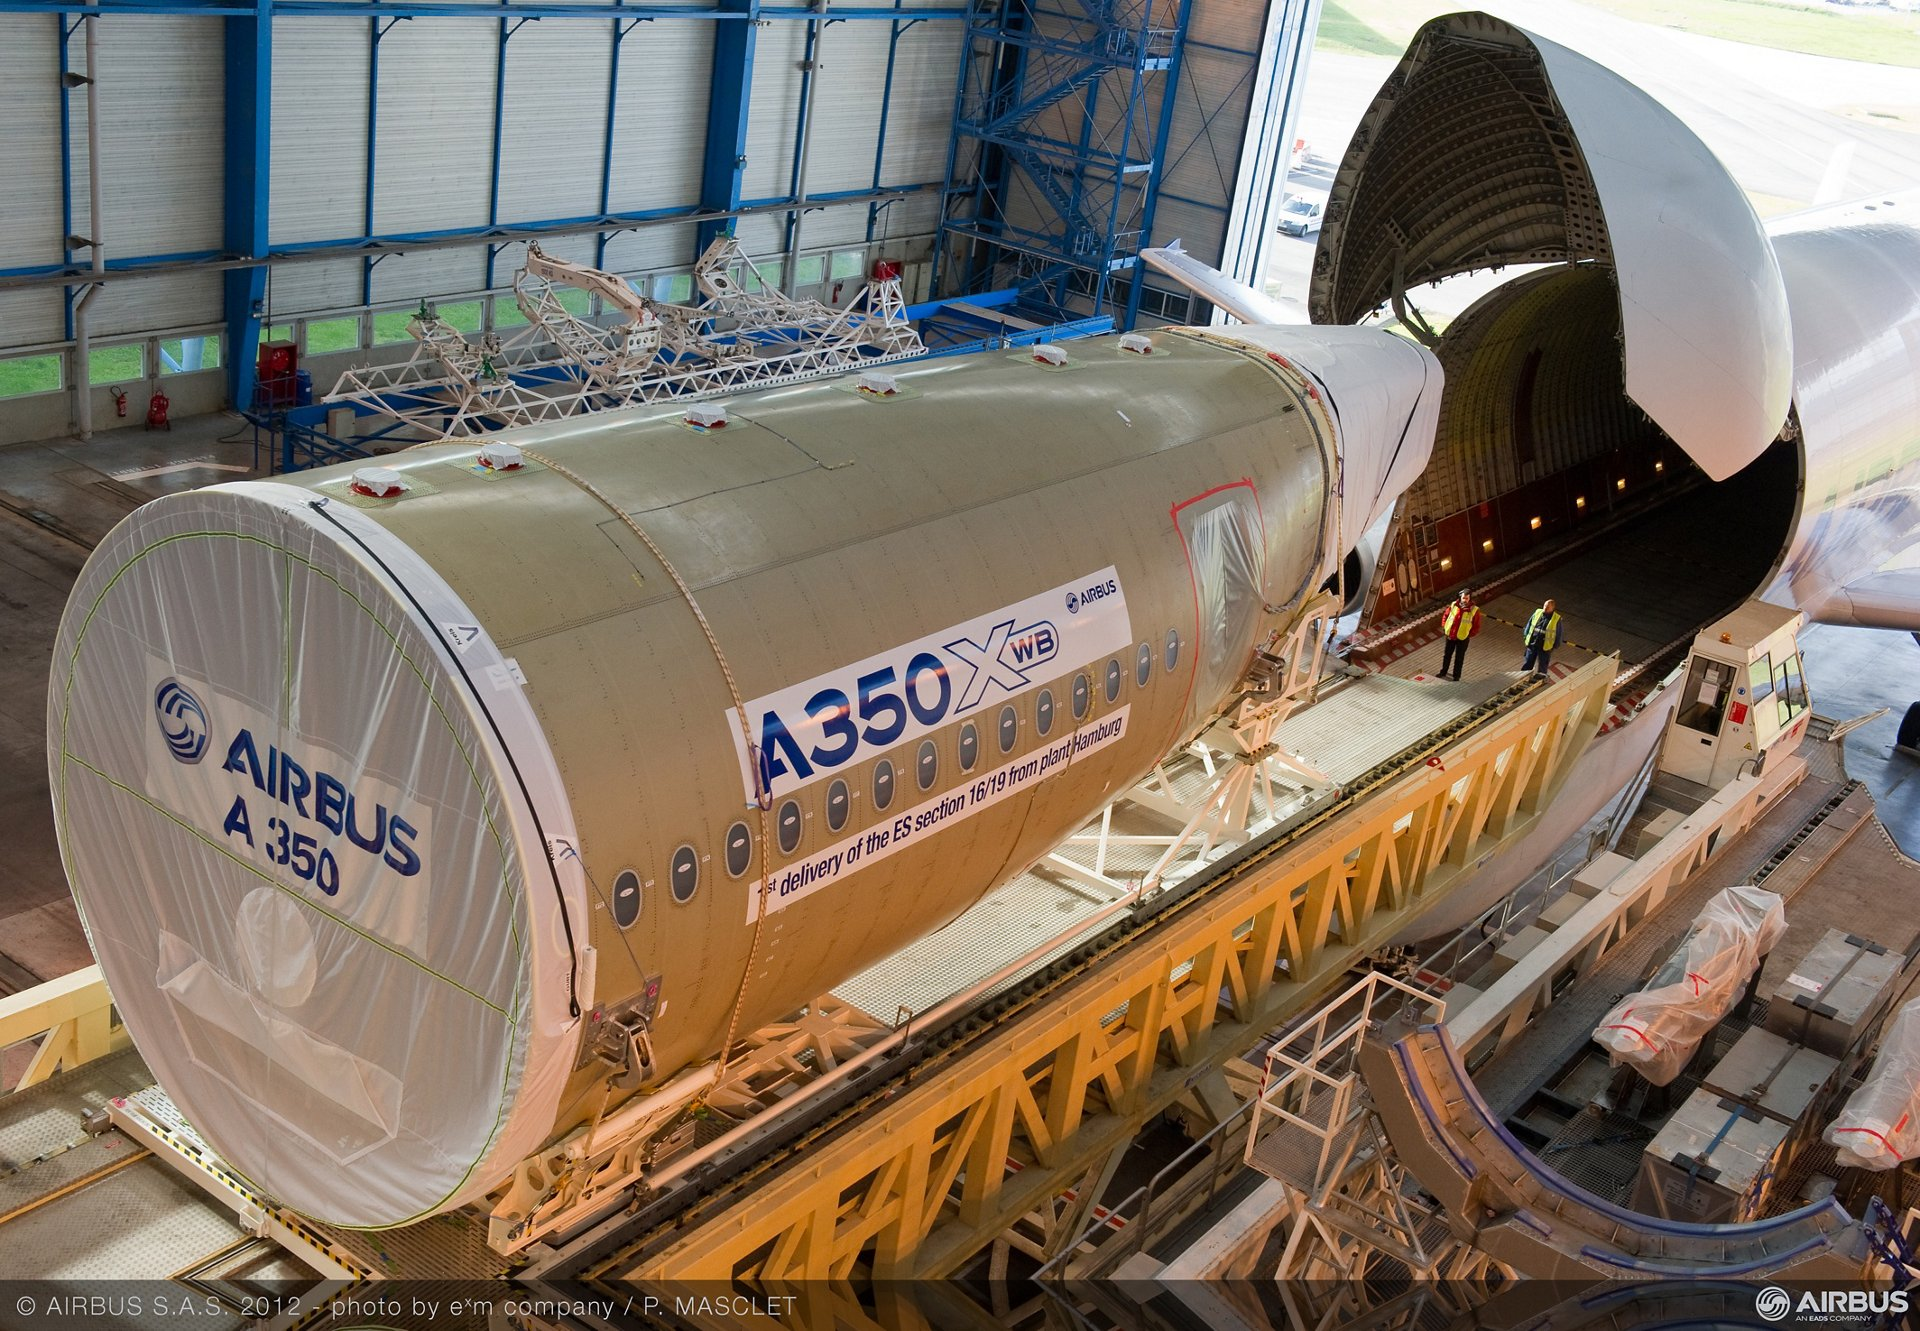 Find out how Airbus utilises various transport solutions in support of its production network